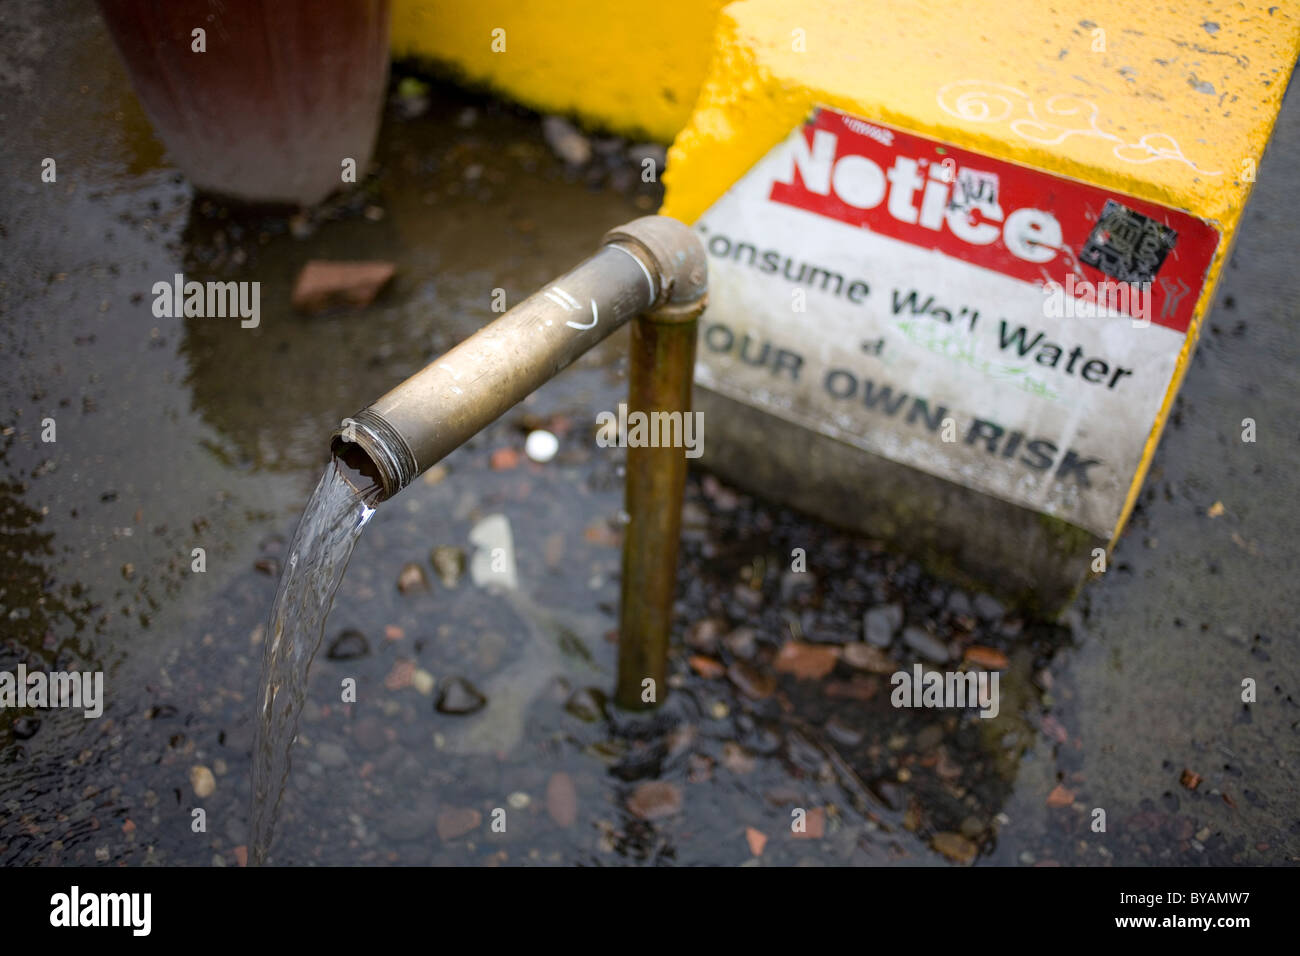 Public artesian well in Olympia Washington flowing from a pipe - Stock Image